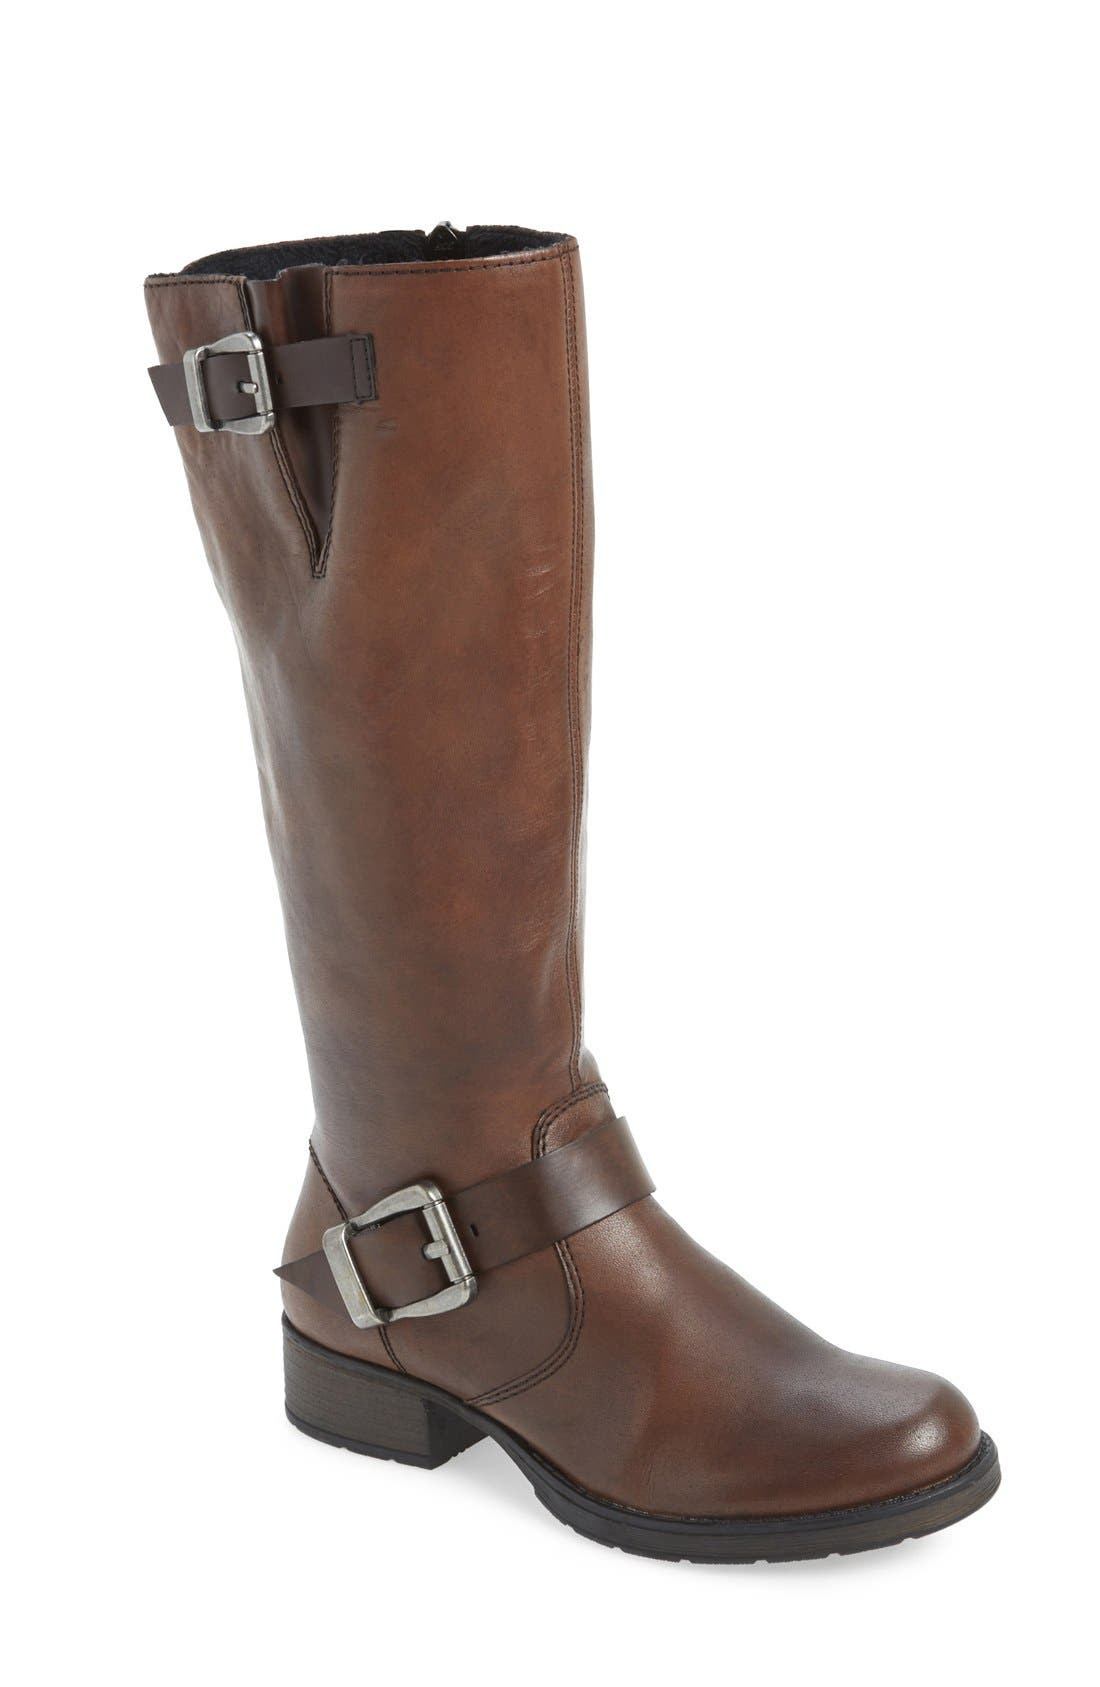 RIEKER ANTISTRESS Rieker Antistress 'Faith 80' Tall Boot